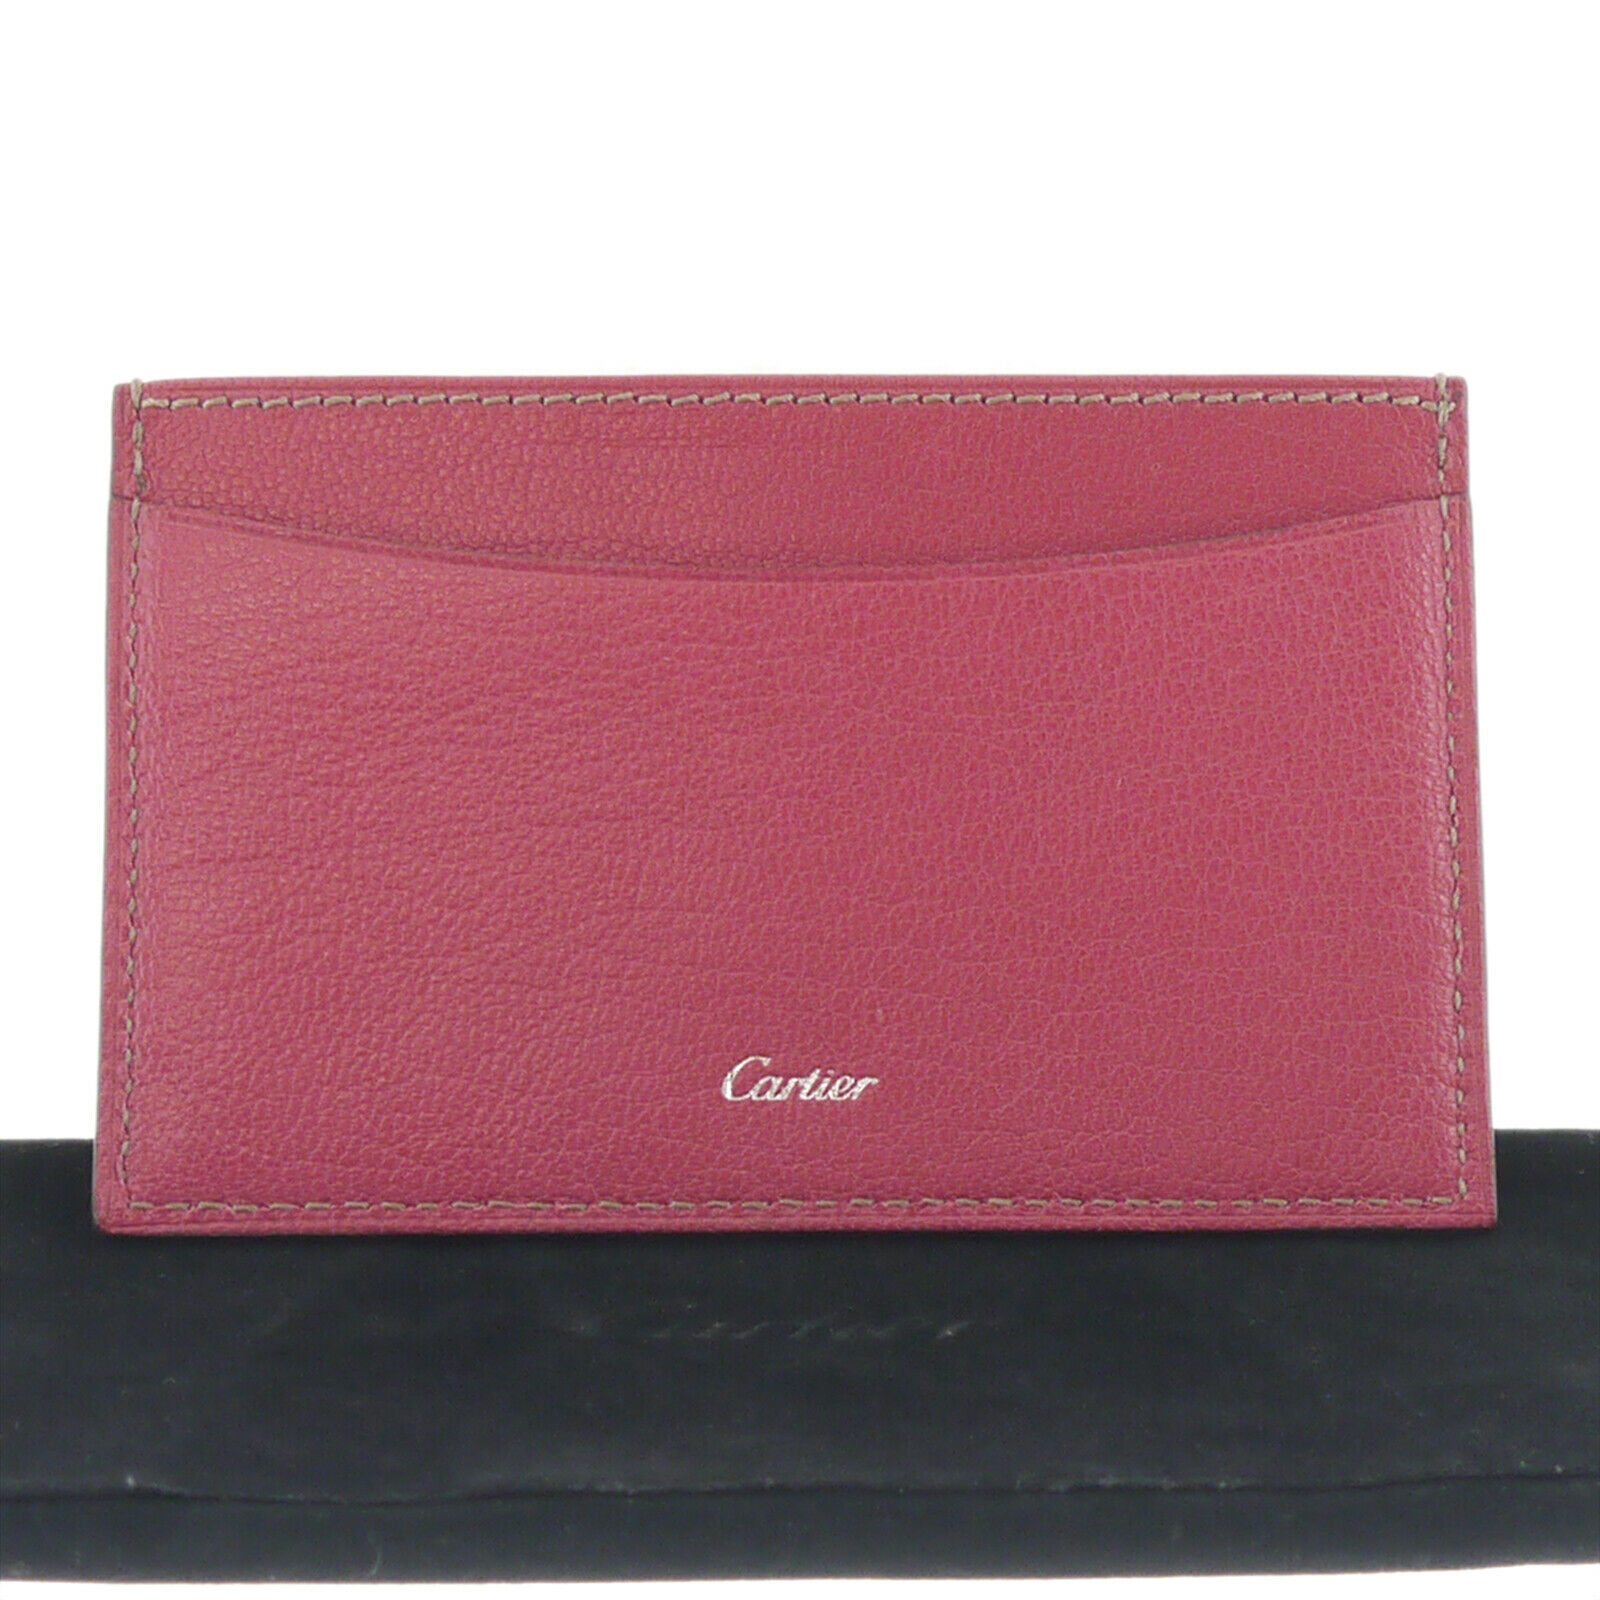 Authentic Cartier Les Must Simple Card Case Pink Leather #f46827